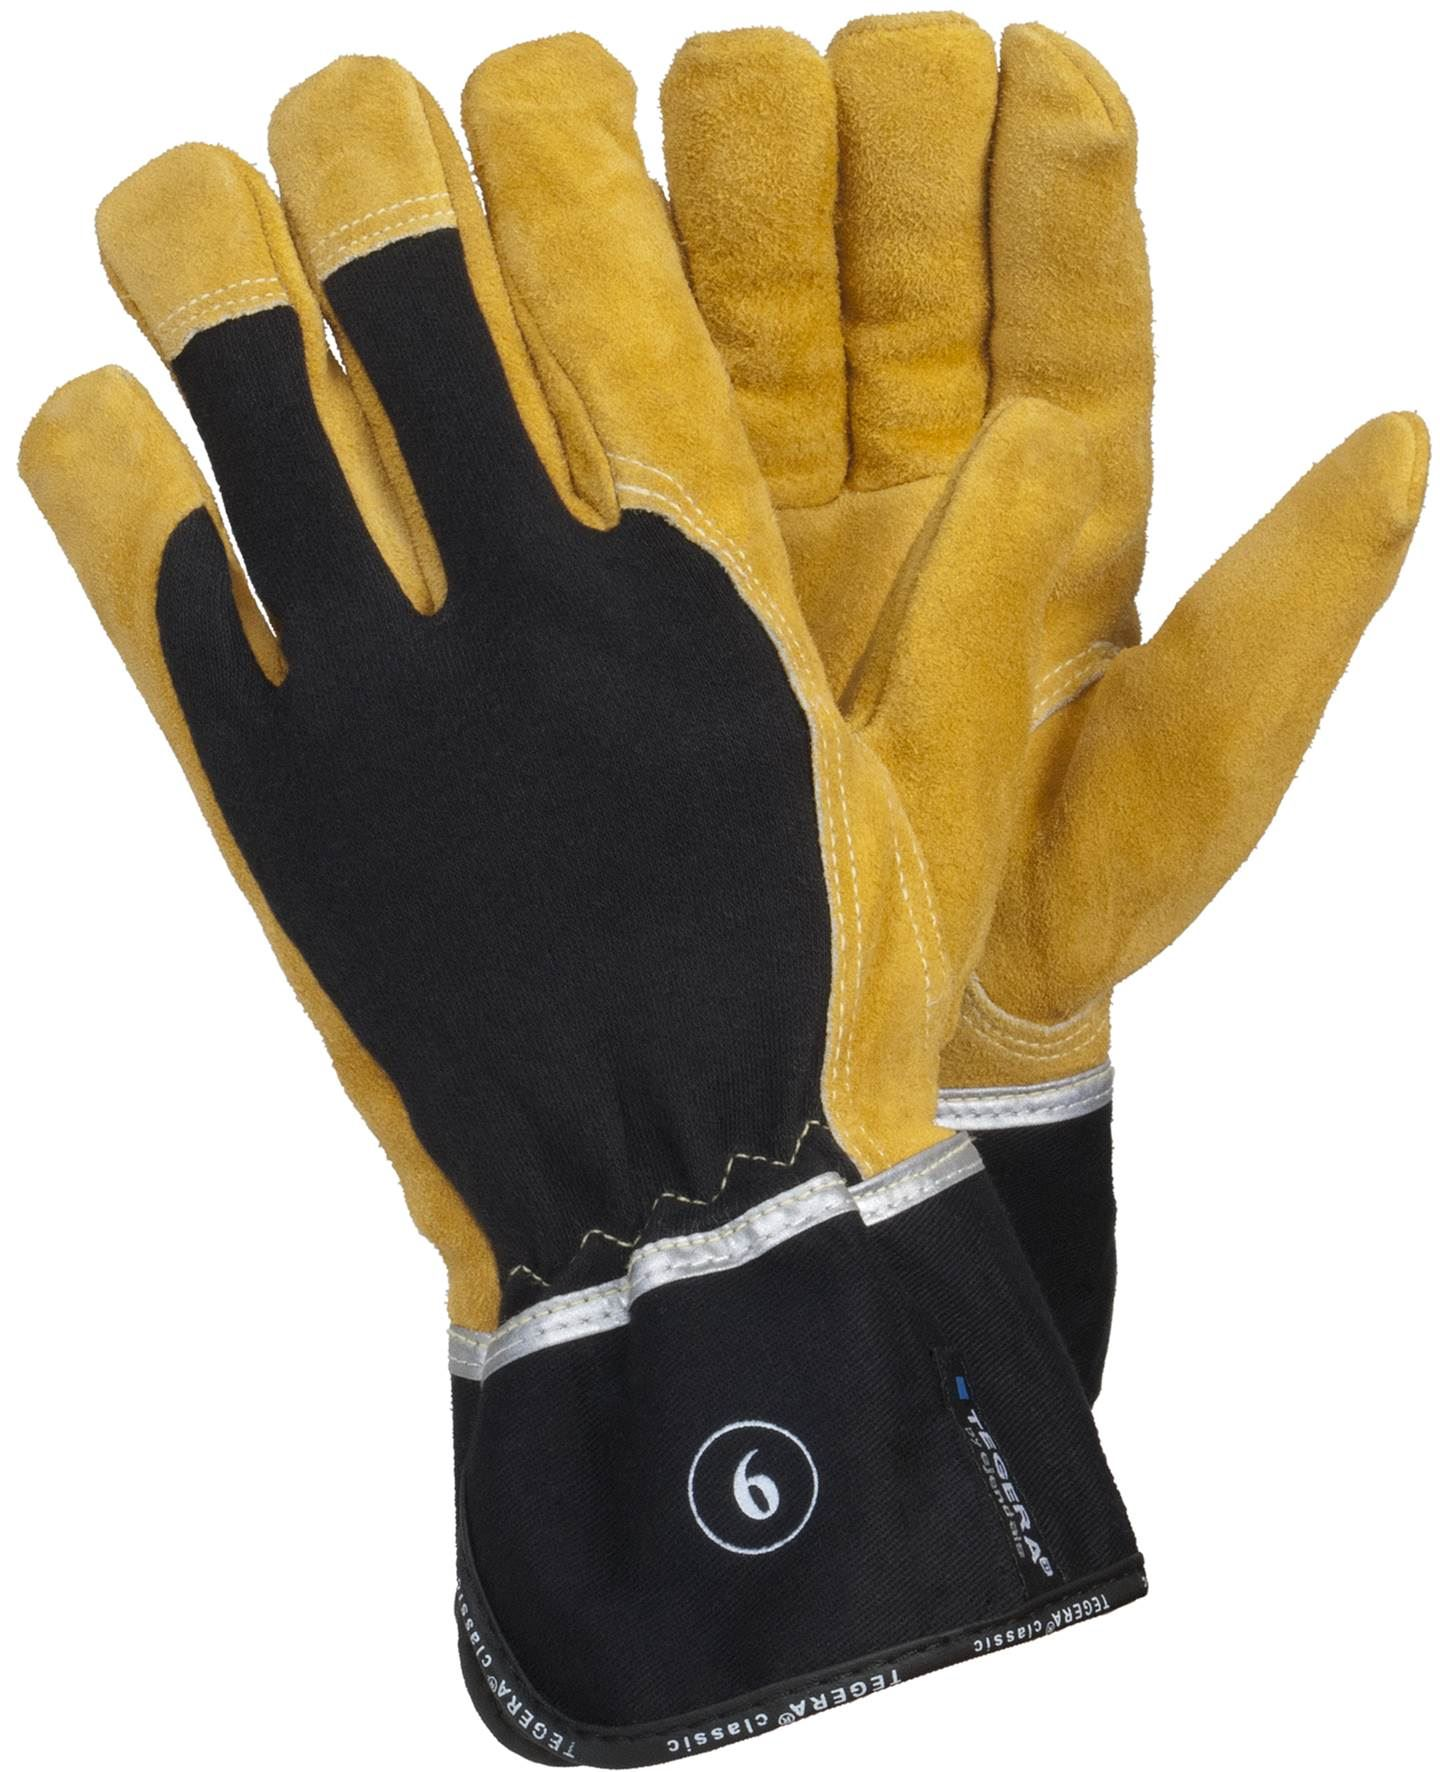 Leather work gloves ebay - Tegera Heavy Duty Kevlar Fiber Leather Work Gloves